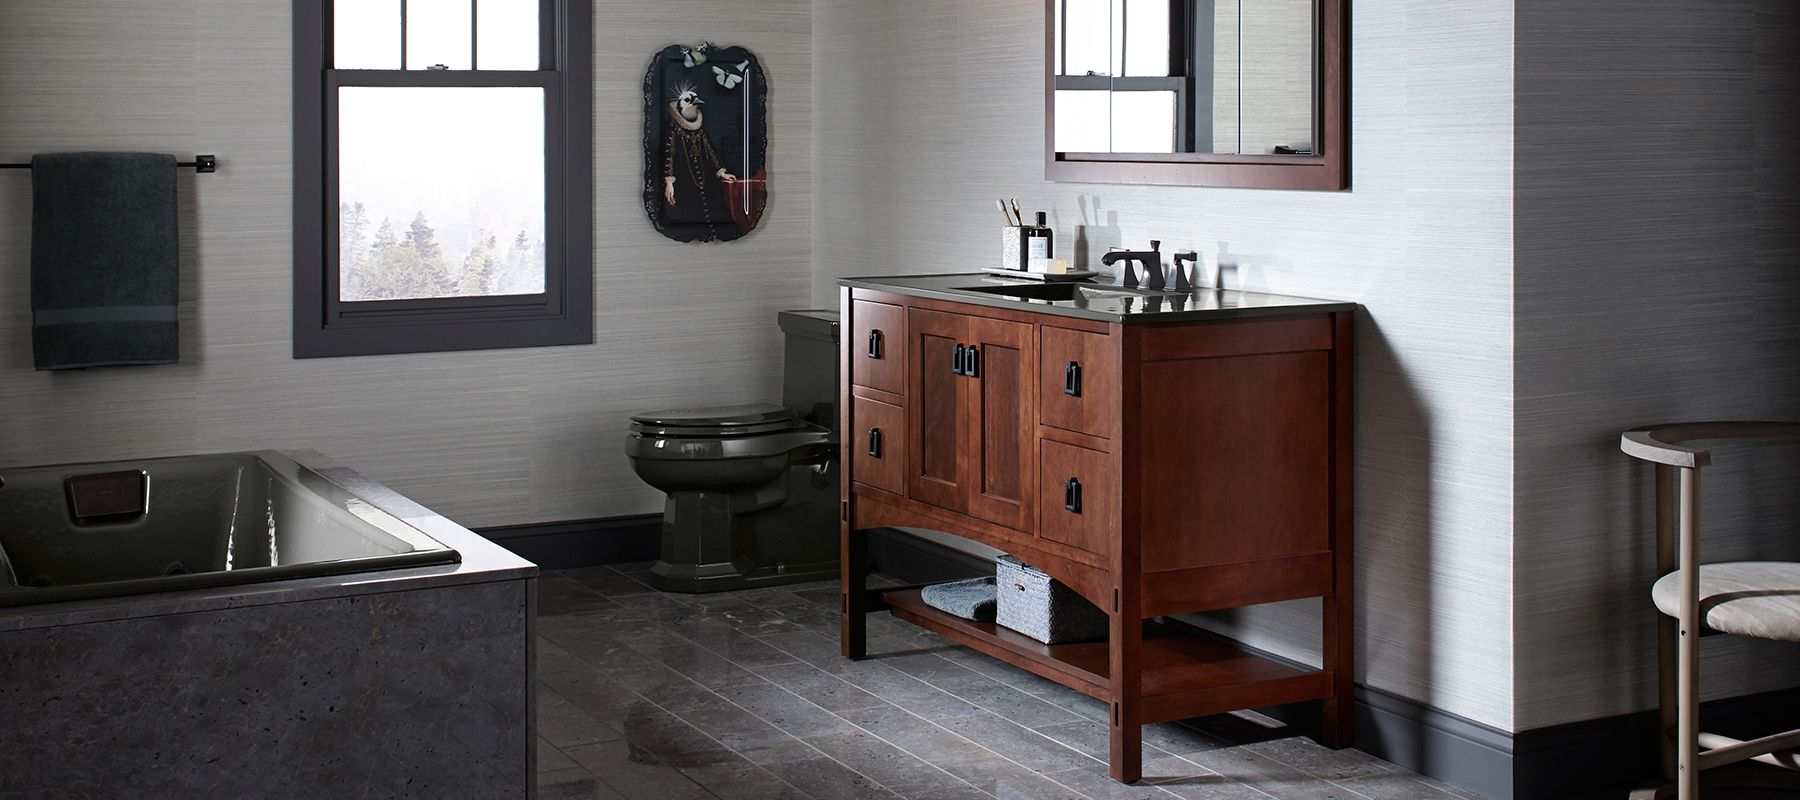 Wall Mount Bathroom Sinks Bathroom Kohler